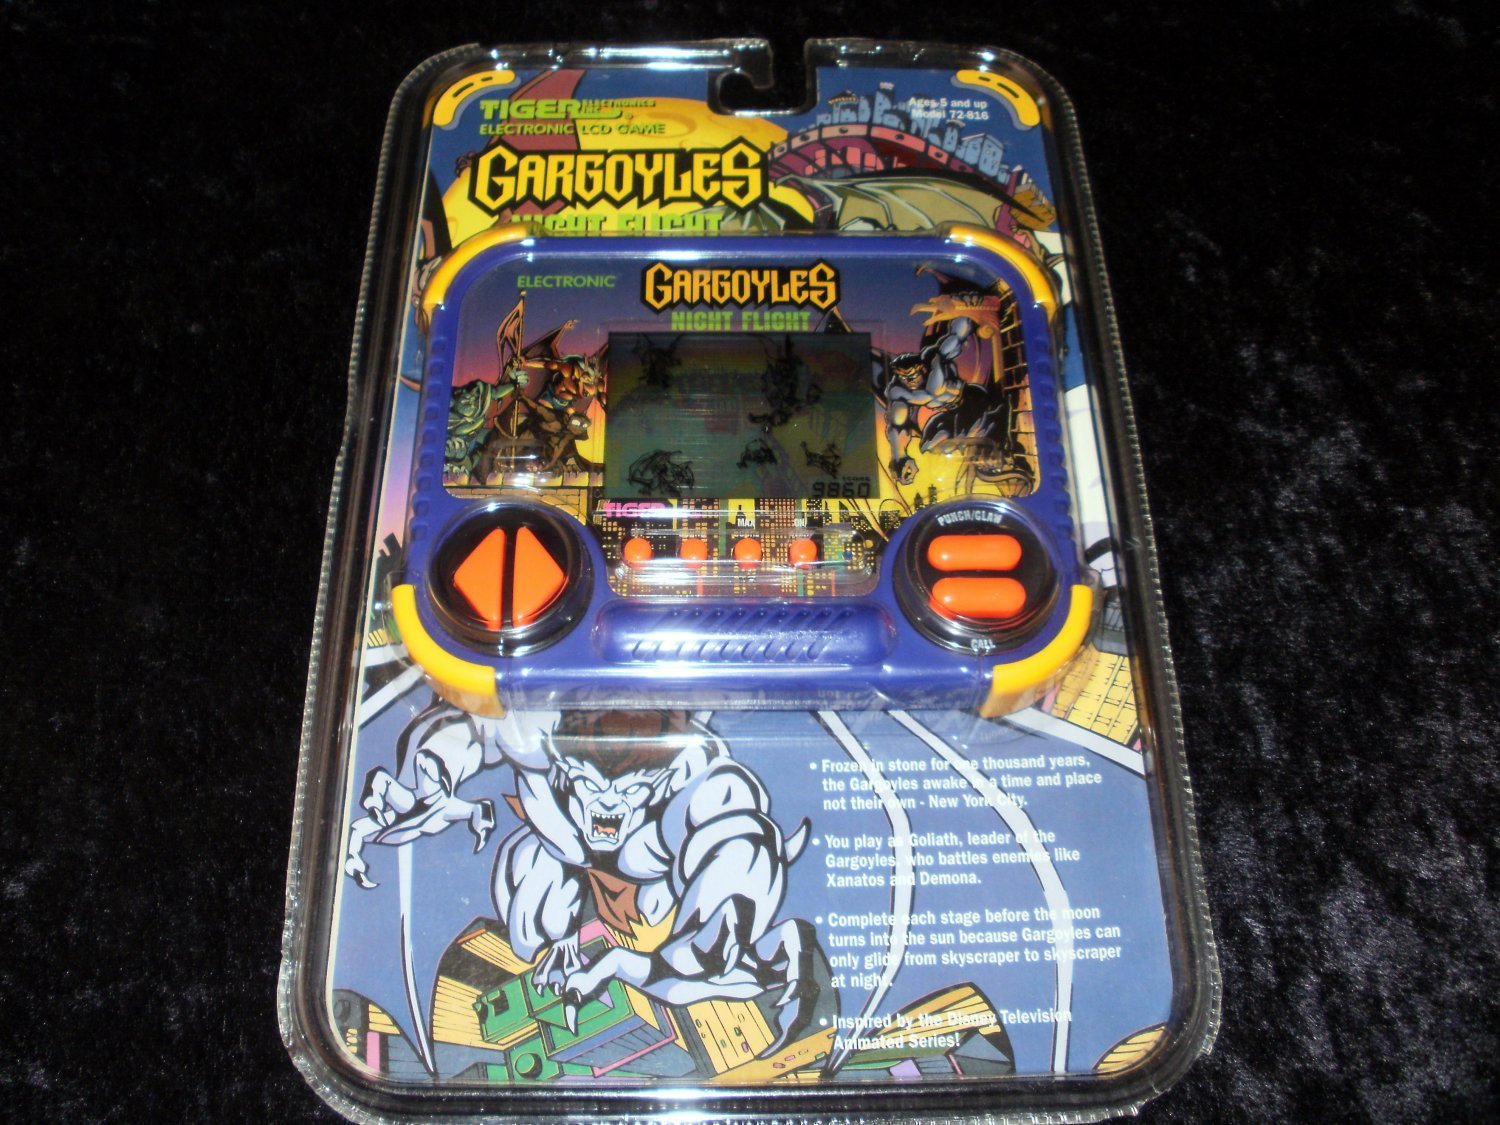 Gargoyles Night Flight - Vintage Handheld - Tiger Electronics 1995 - New Factory Sealed